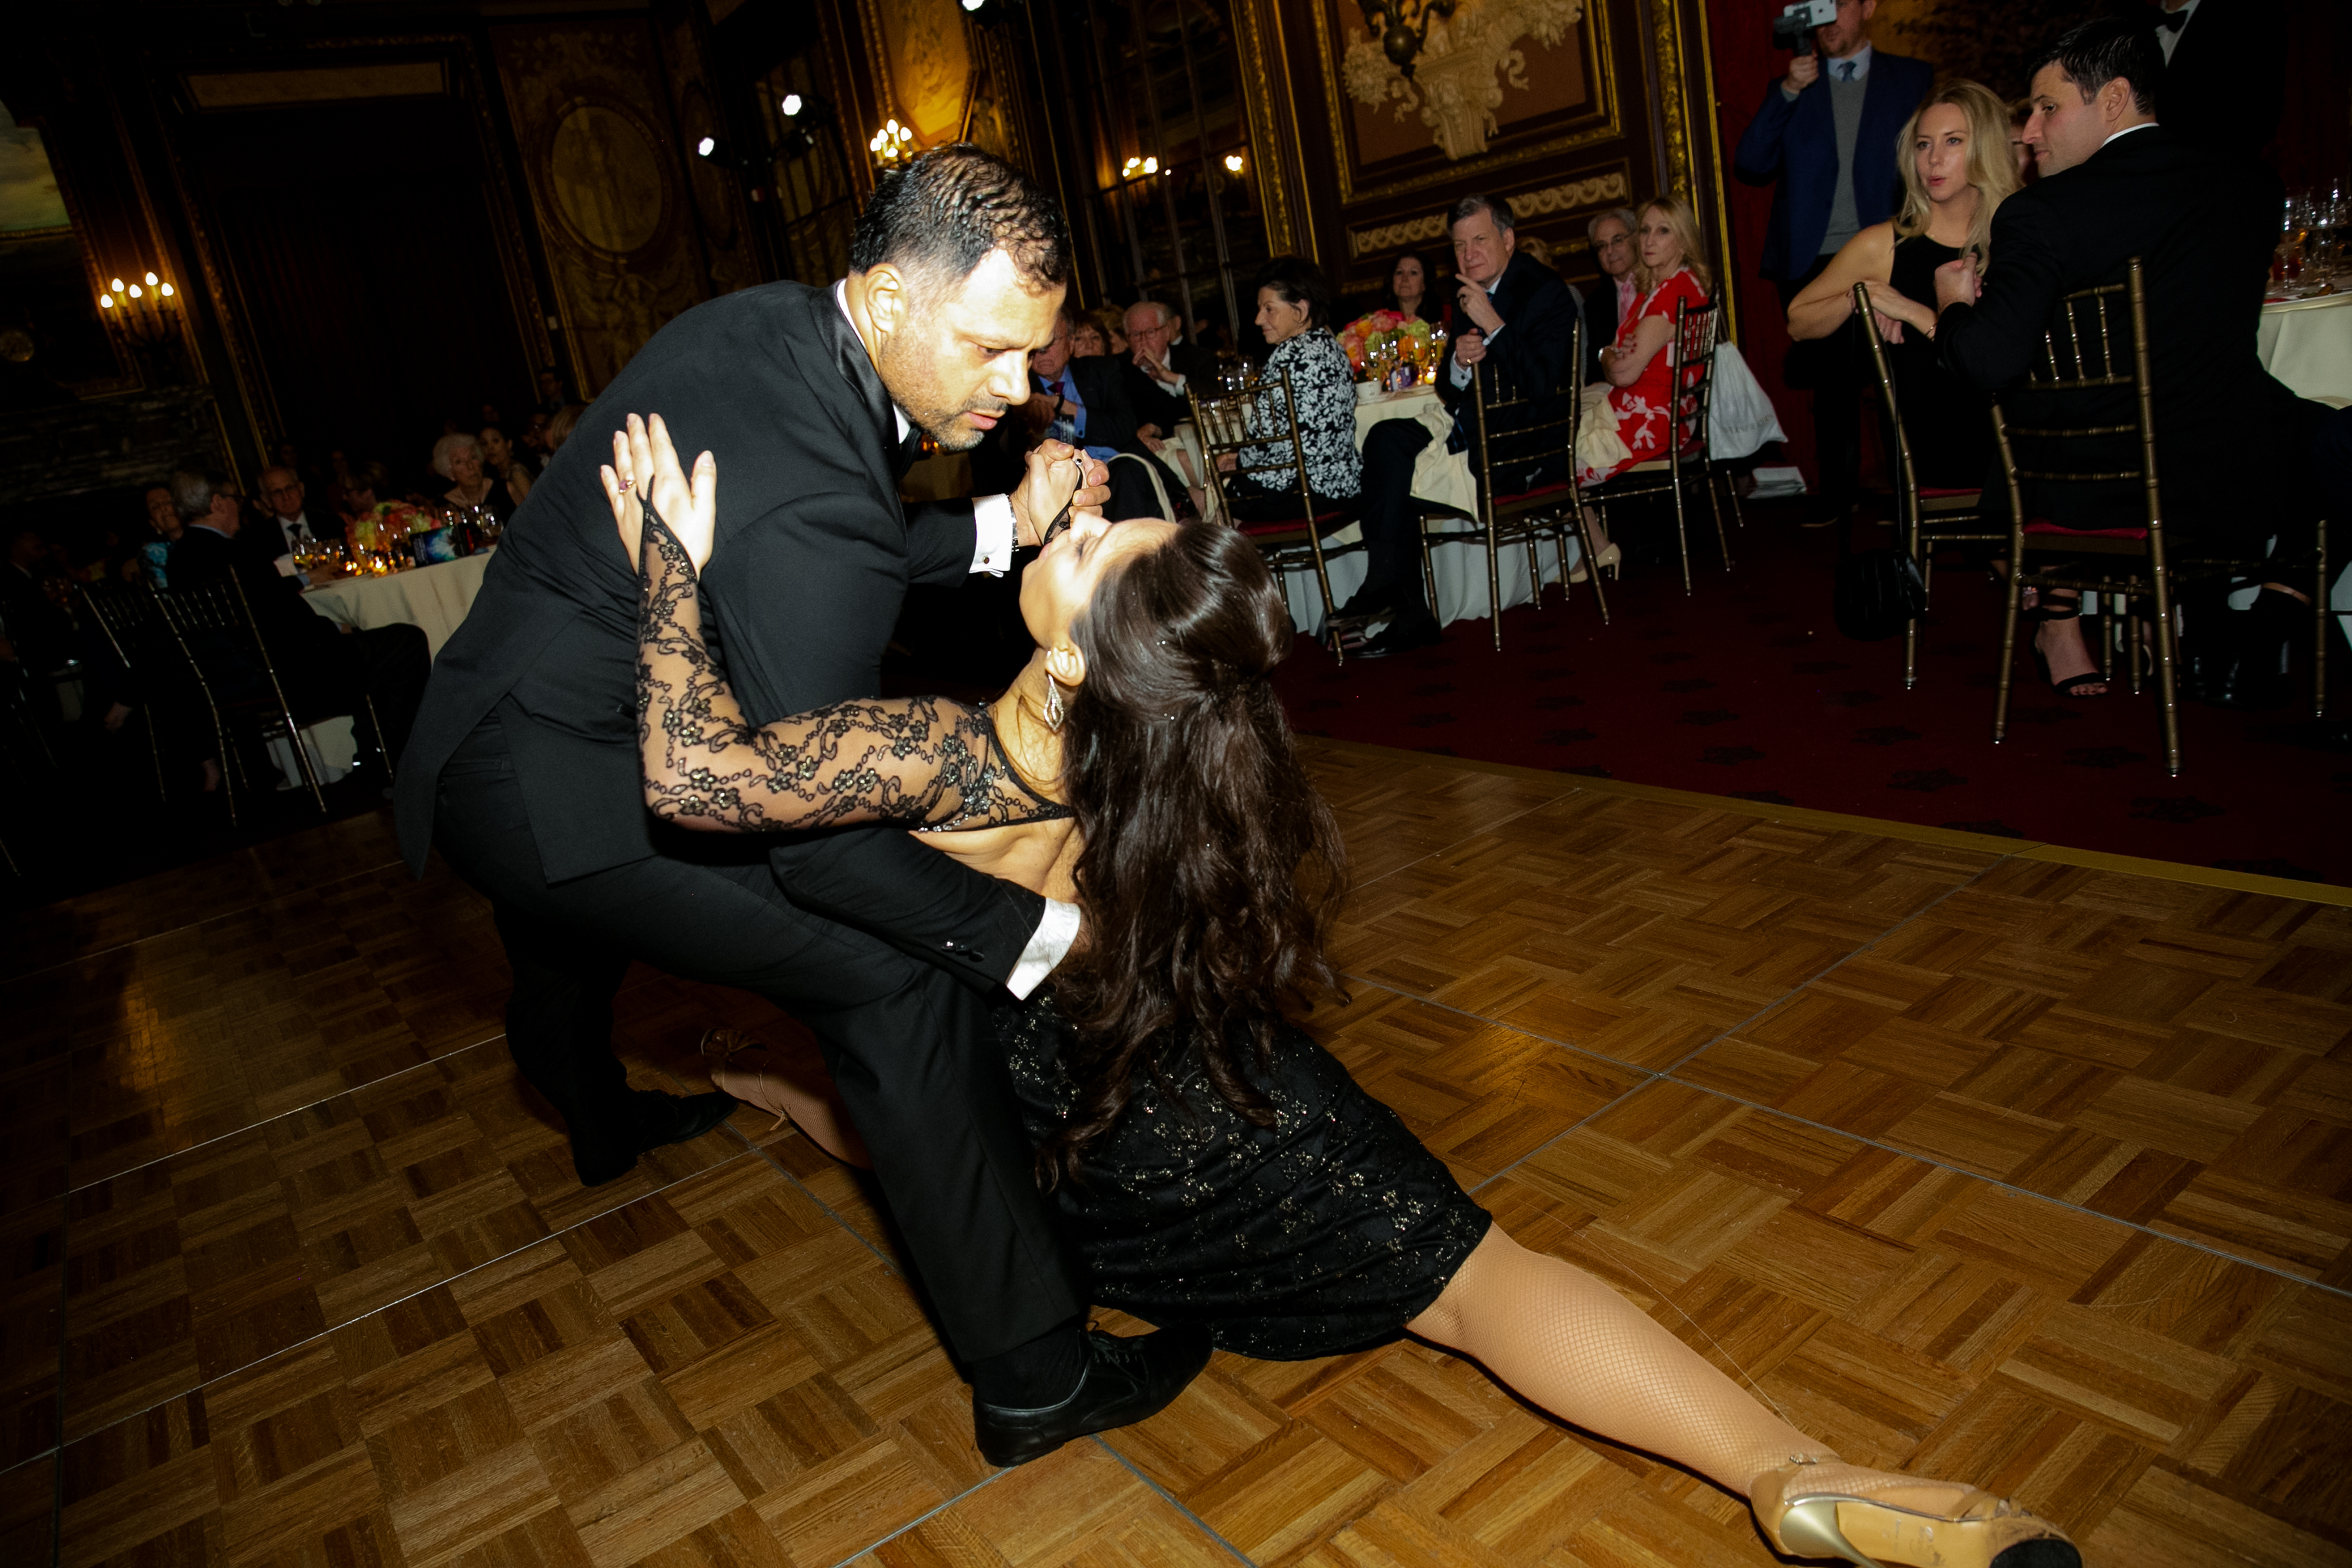 Man and woman dancing during the 2019 Gala while guests behind them watch